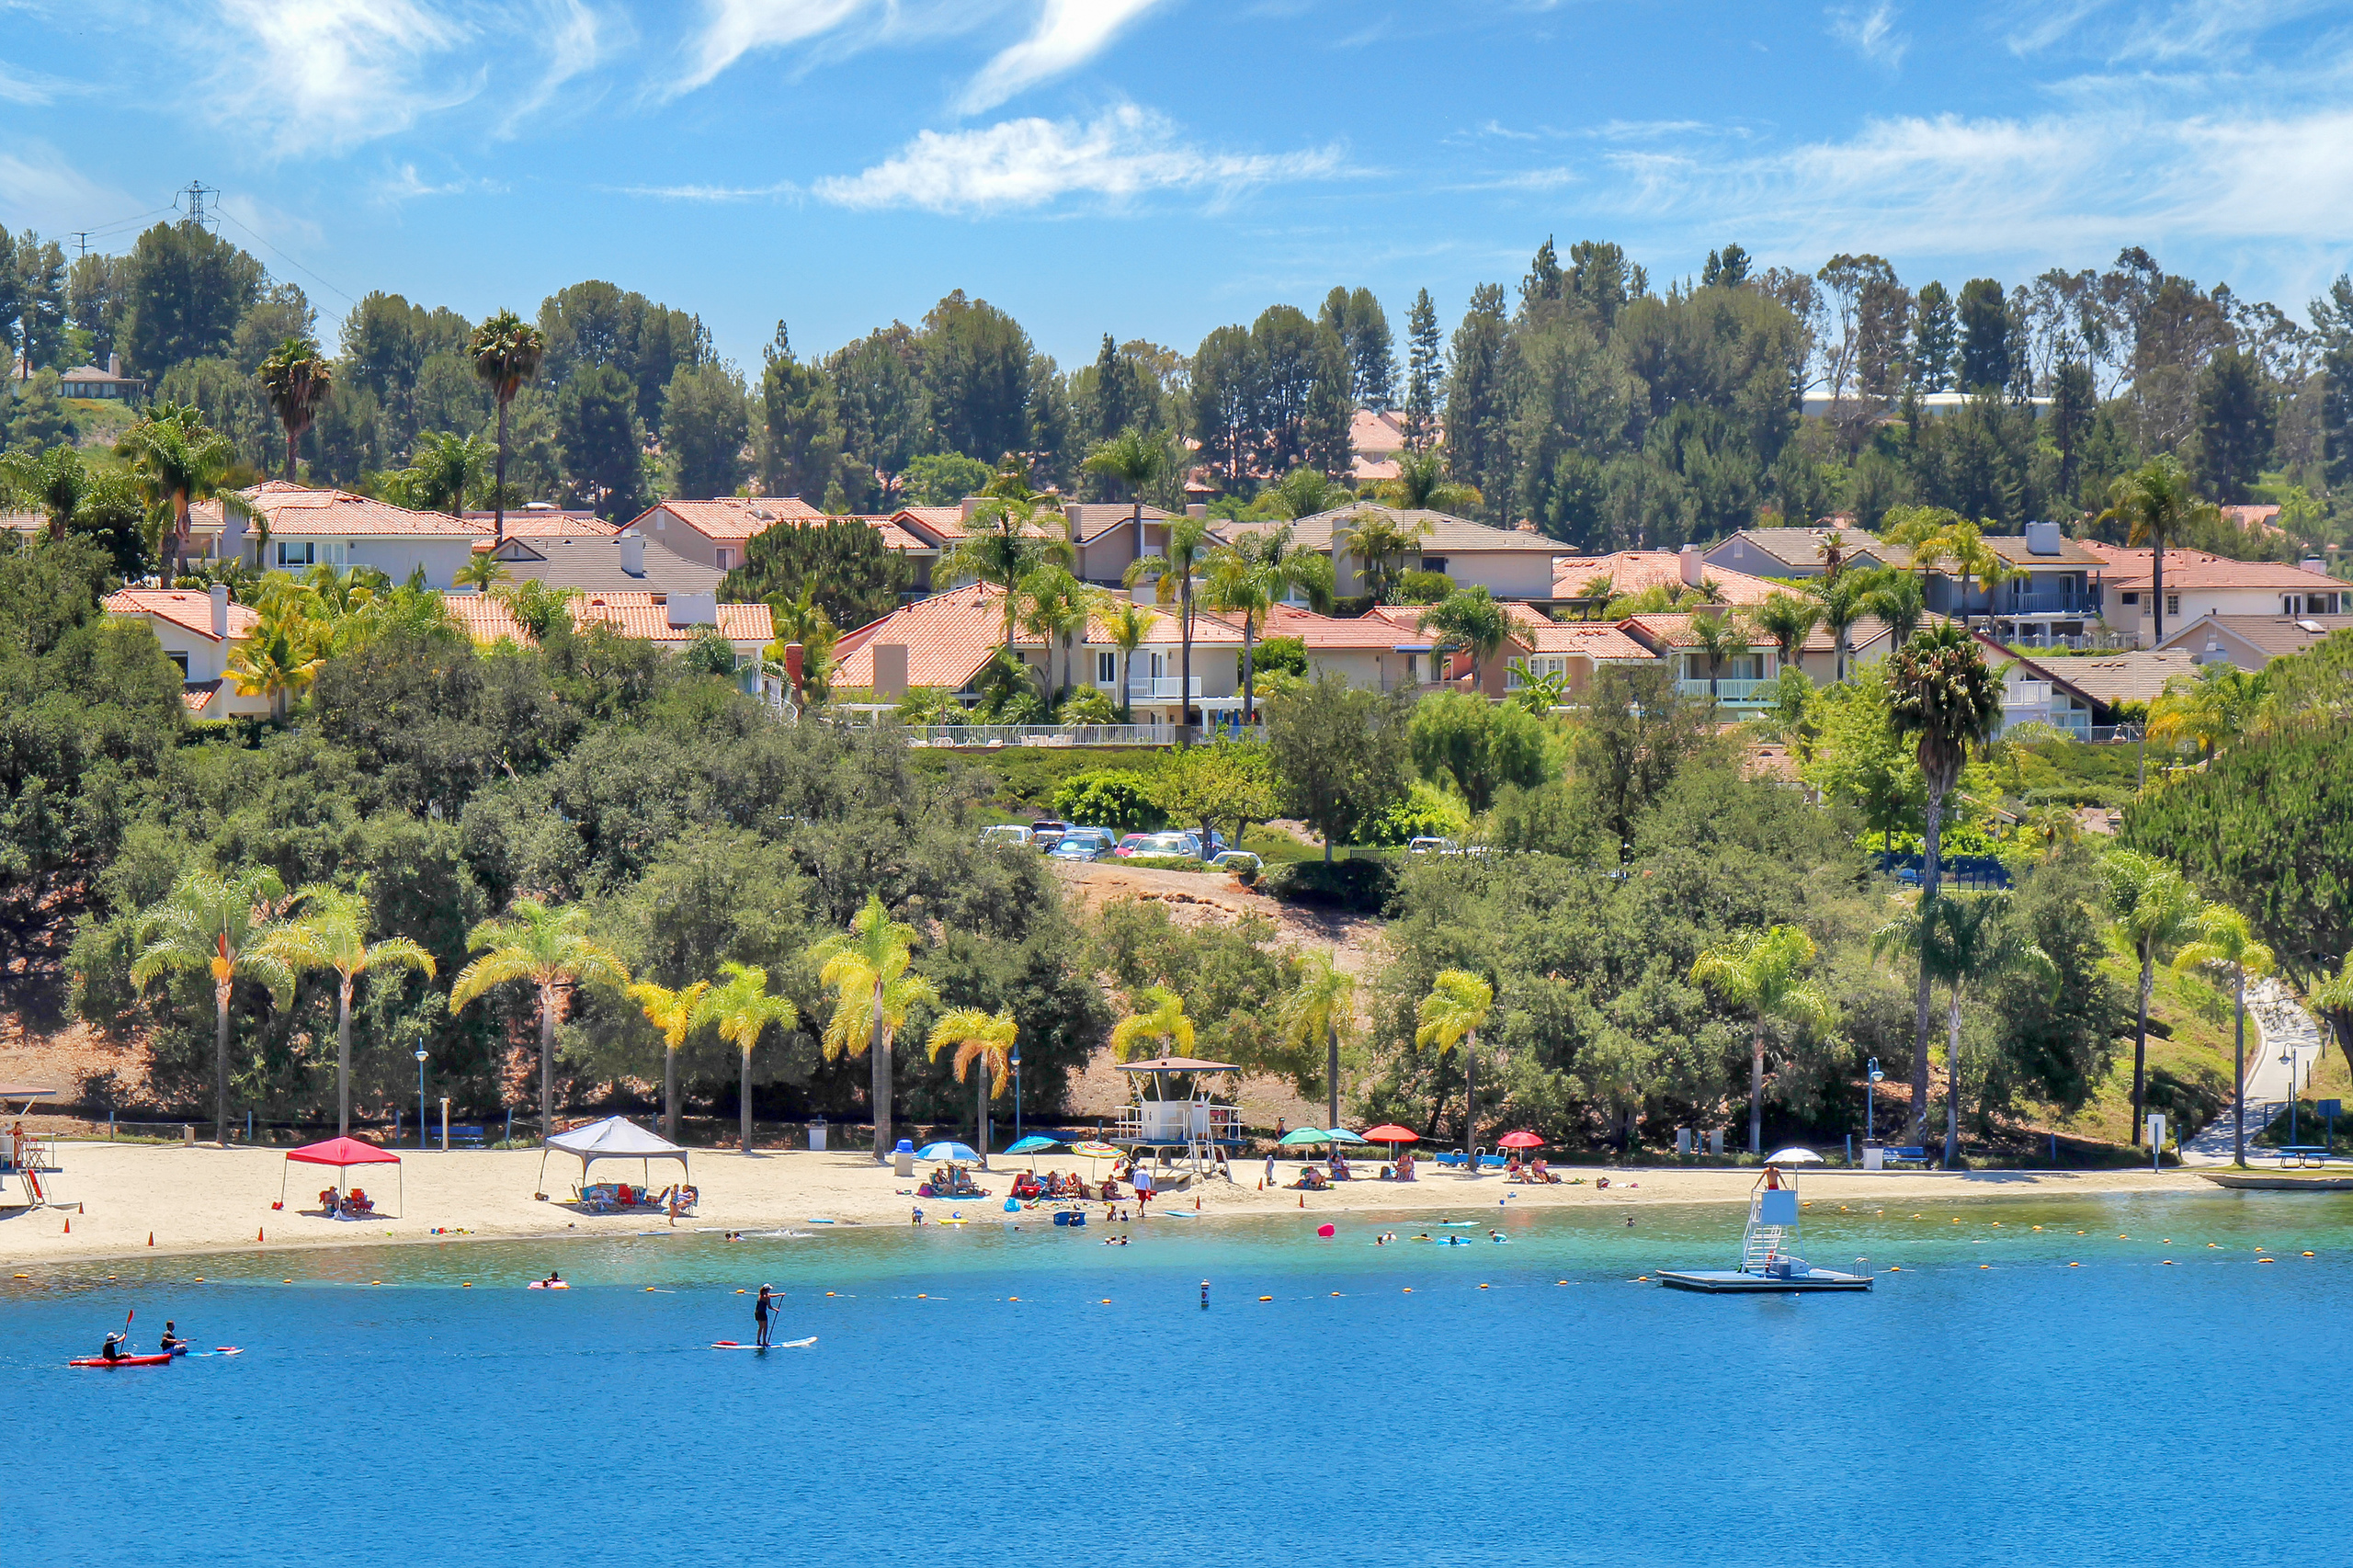 1106121-Mission_Viejo_Lake_15